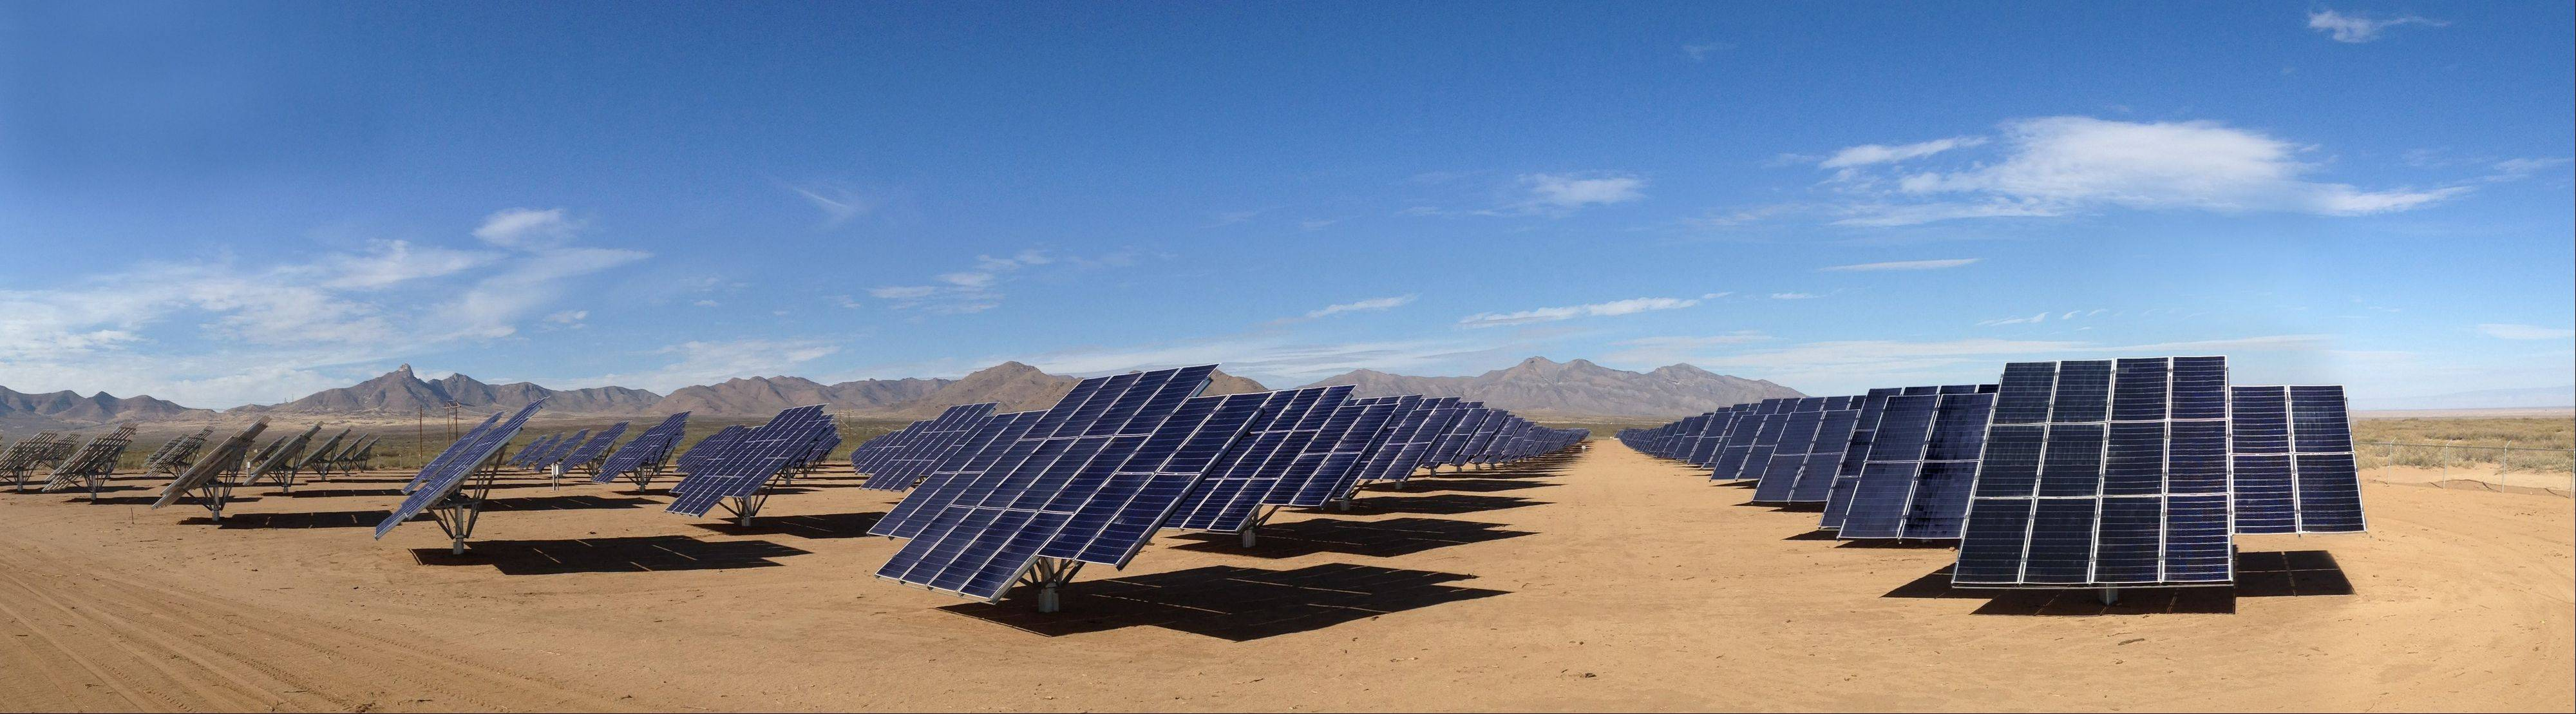 The Army�s solar array at White Sands, N.M.